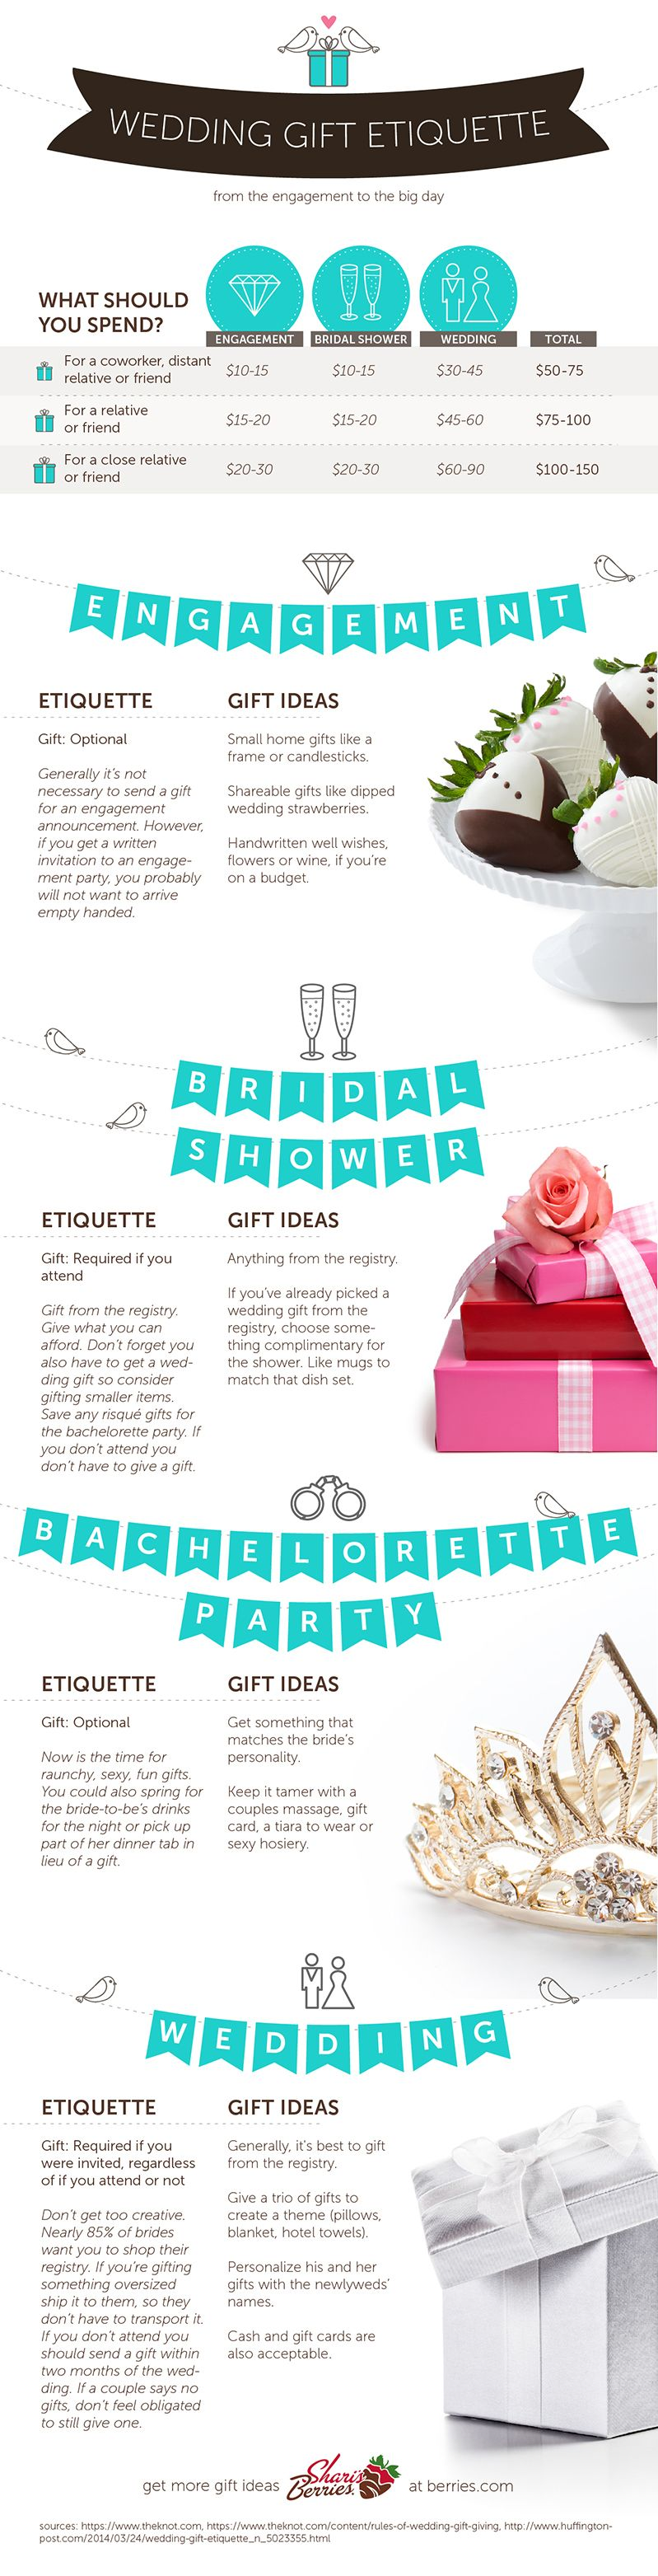 Wedding Gift Etiquette Shari S Berries Wedding Gift Guide Engagement Party Gifts Wedding Gift Etiquette